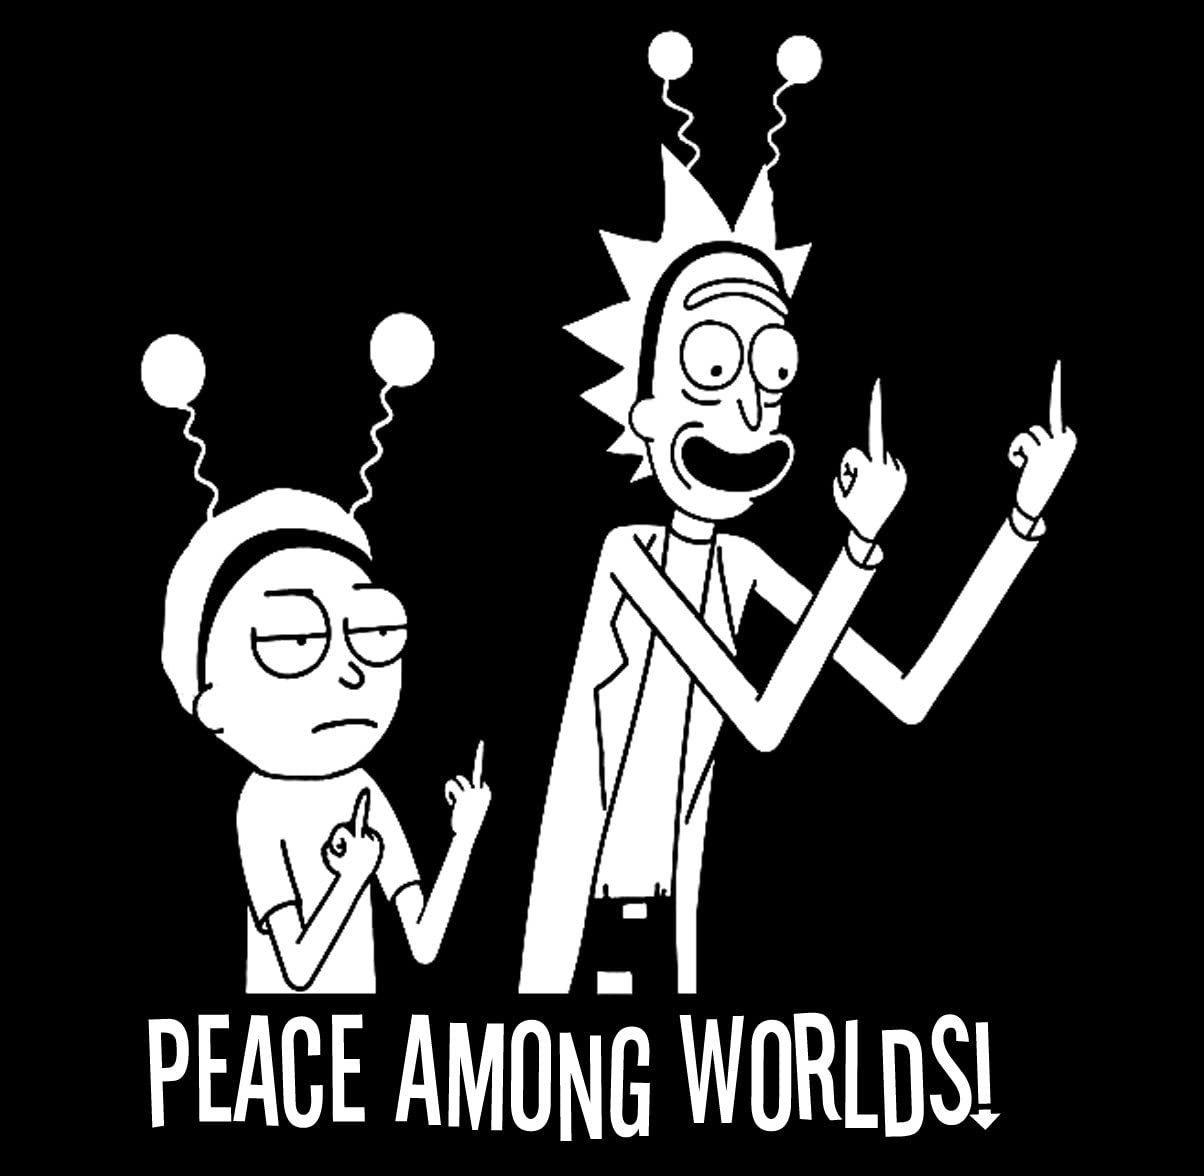 Rick Morty Alien Peace Among Worlds Sticker Morty Decal Laptop